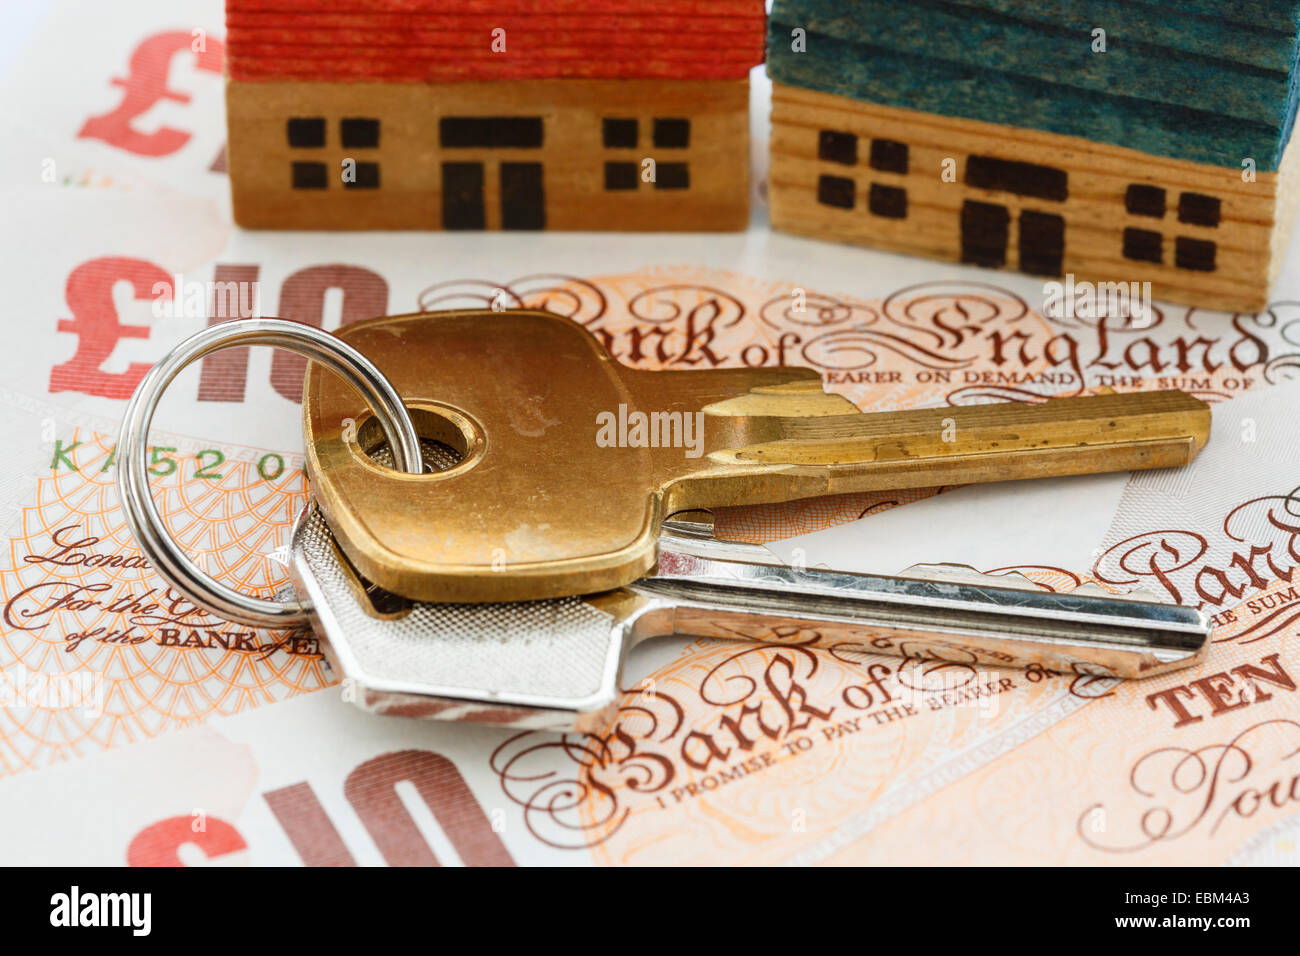 House door keys on money sterling ten pound notes GBP with two houses to illustrate property ladder and portfolio - Stock Image